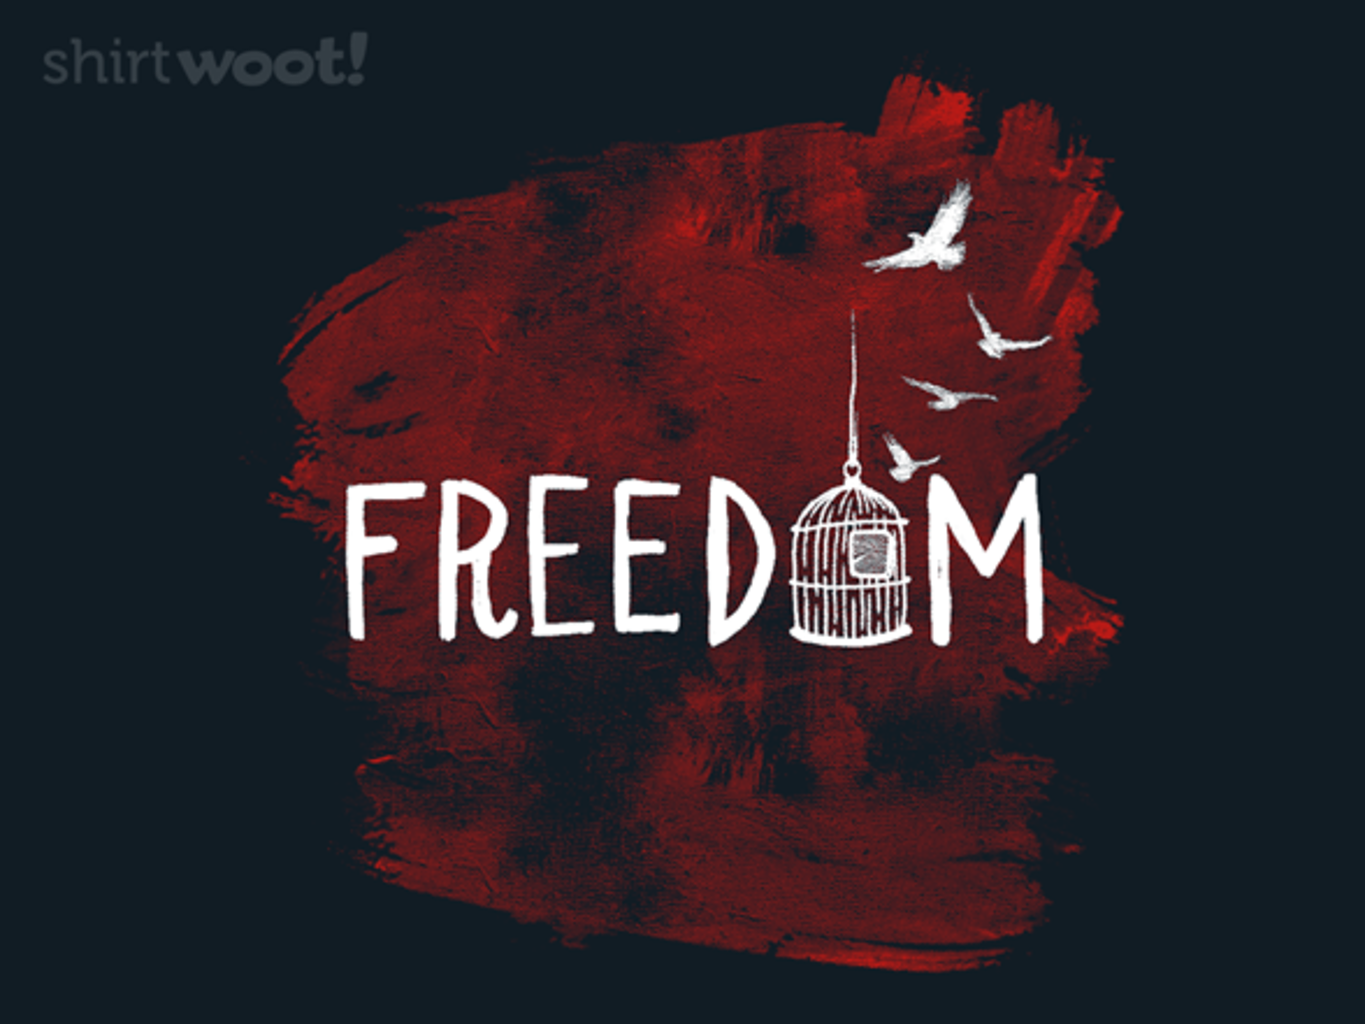 Woot!: Grateful for Freedom